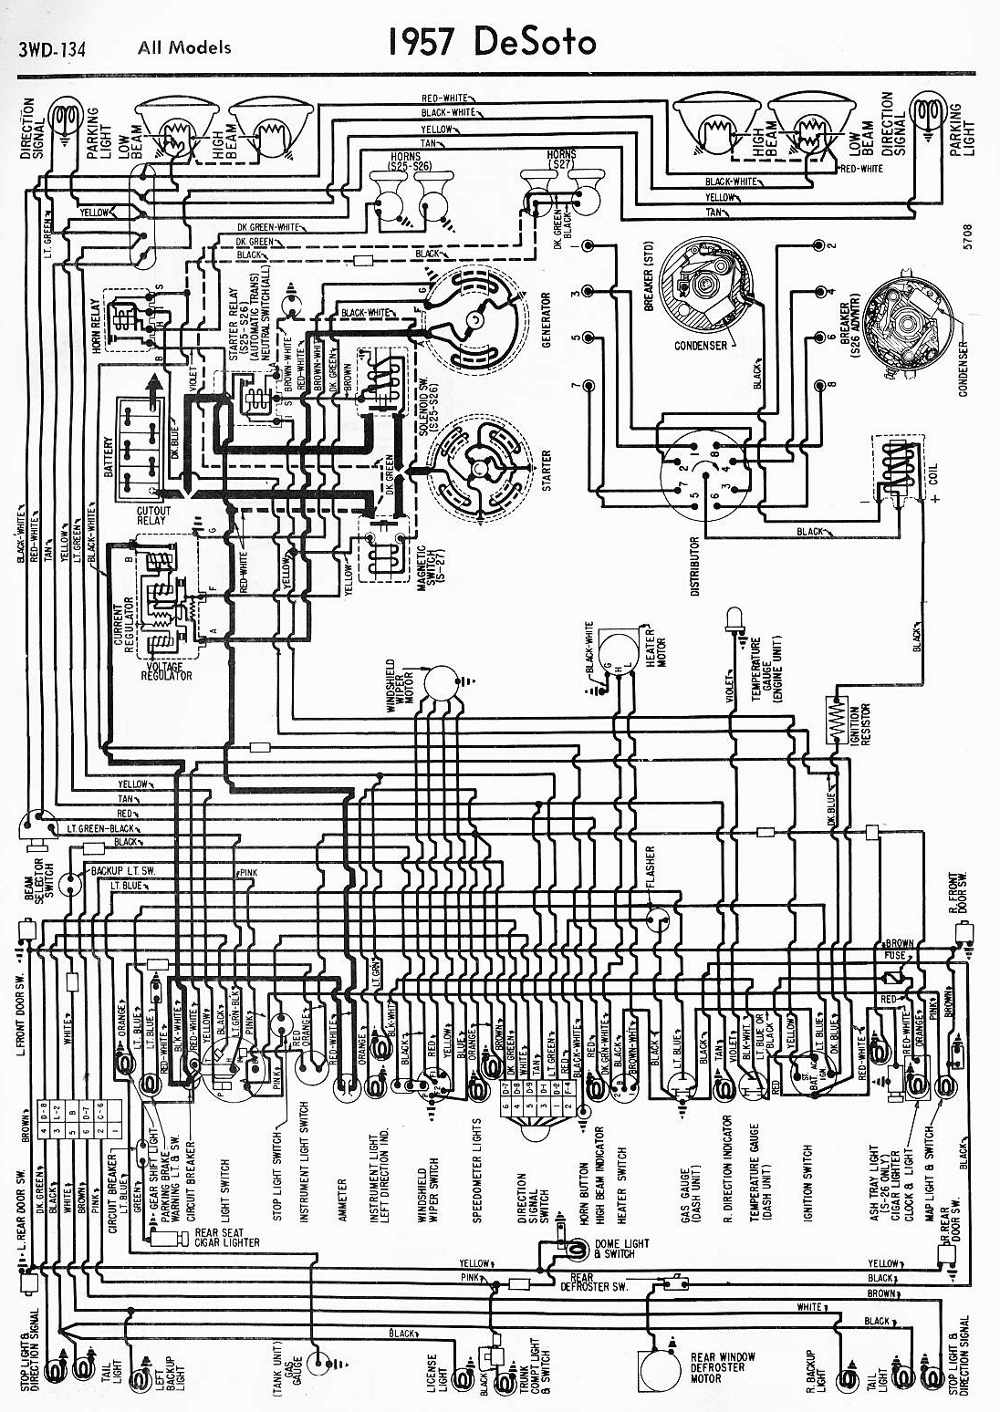 wiring diagrams of 1957 desoto all models?t=1508403749 de soto car manuals, wiring diagrams pdf & fault codes 1941 desoto wiring diagram at edmiracle.co